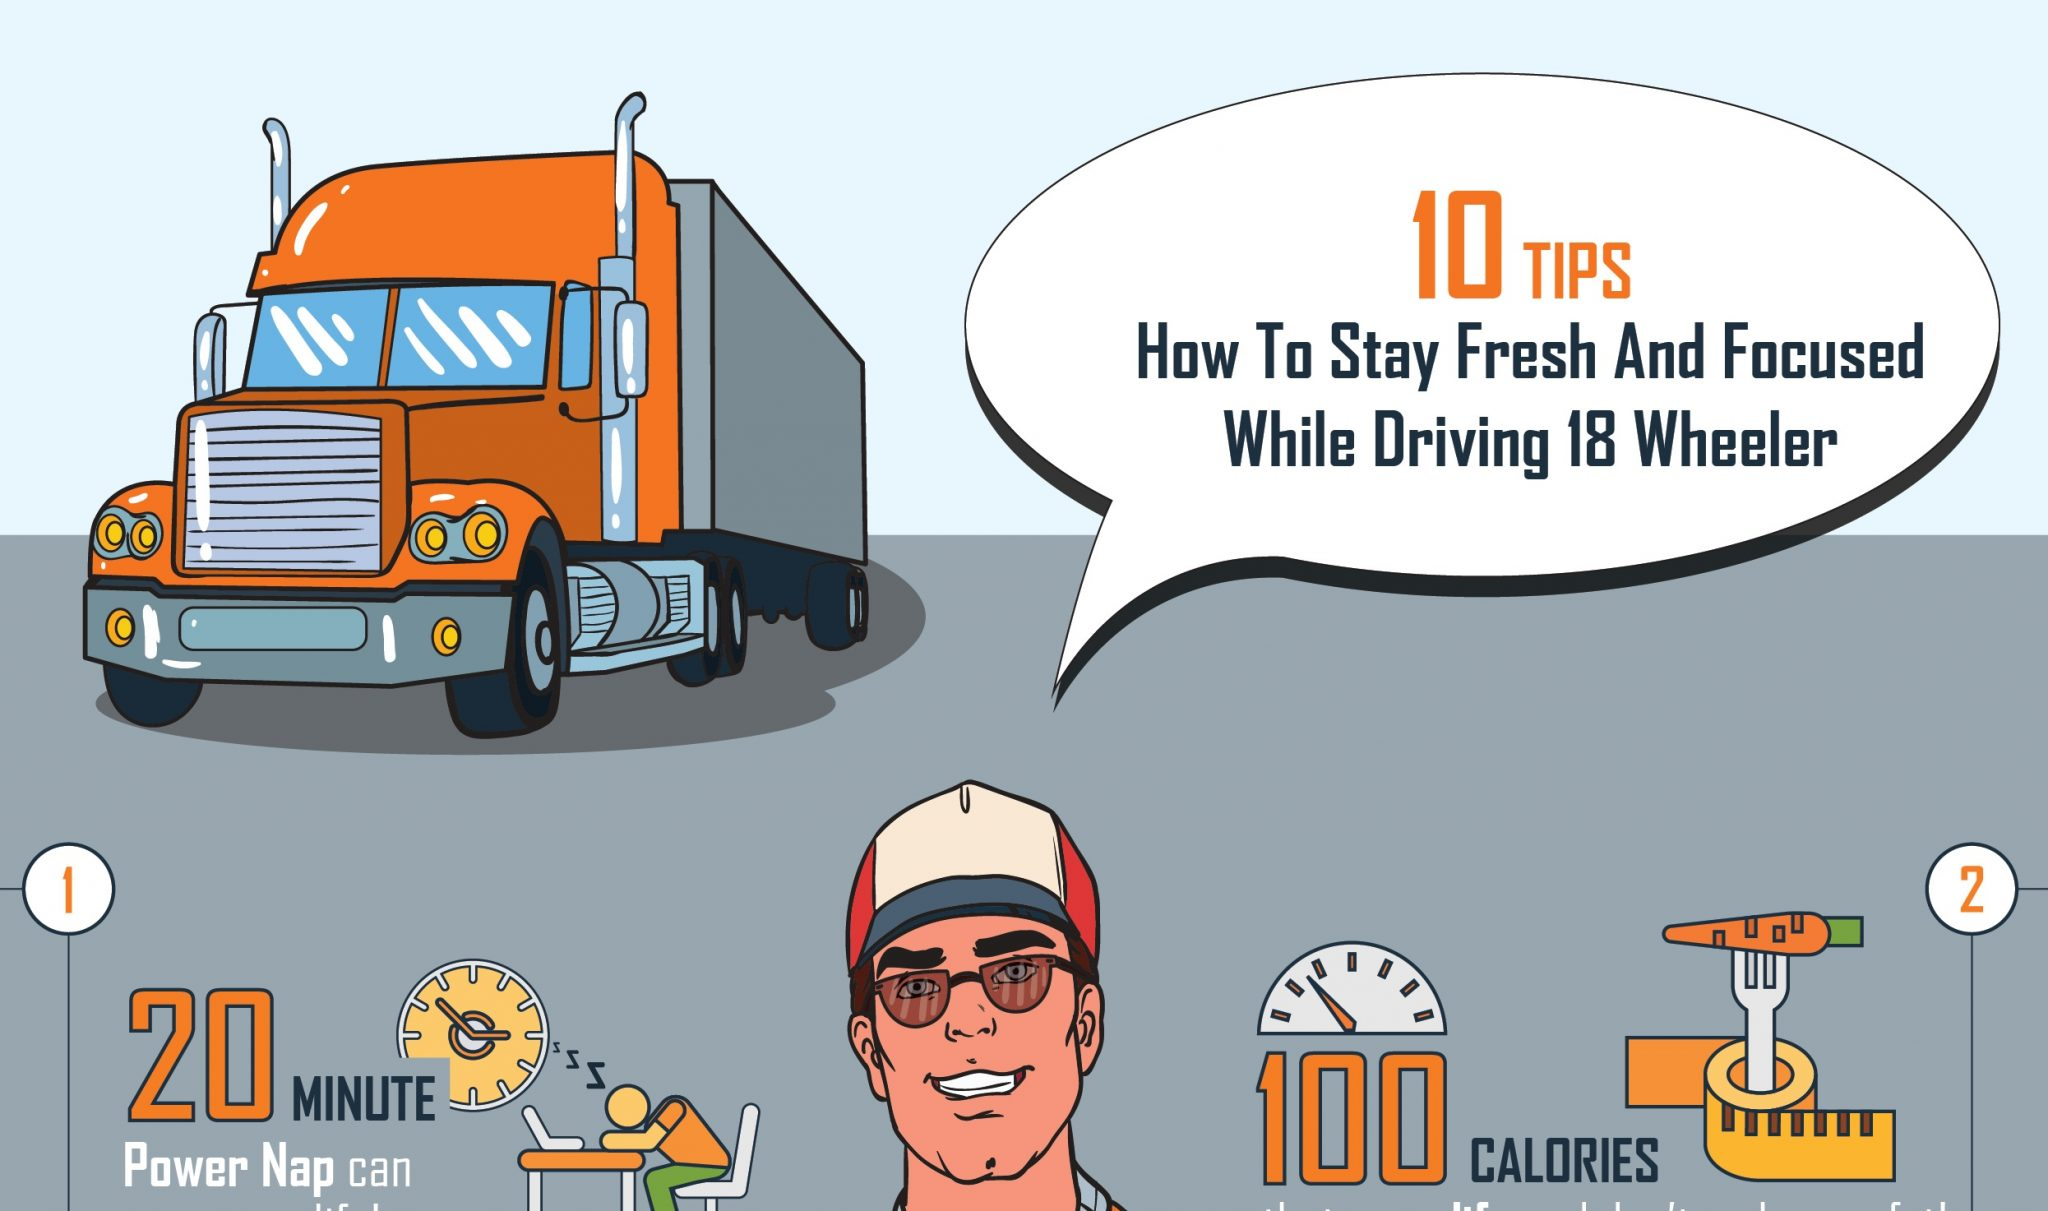 INFOGRAPHIC: 10 Tips How To Stay Focused While Driving 18 Wheeler